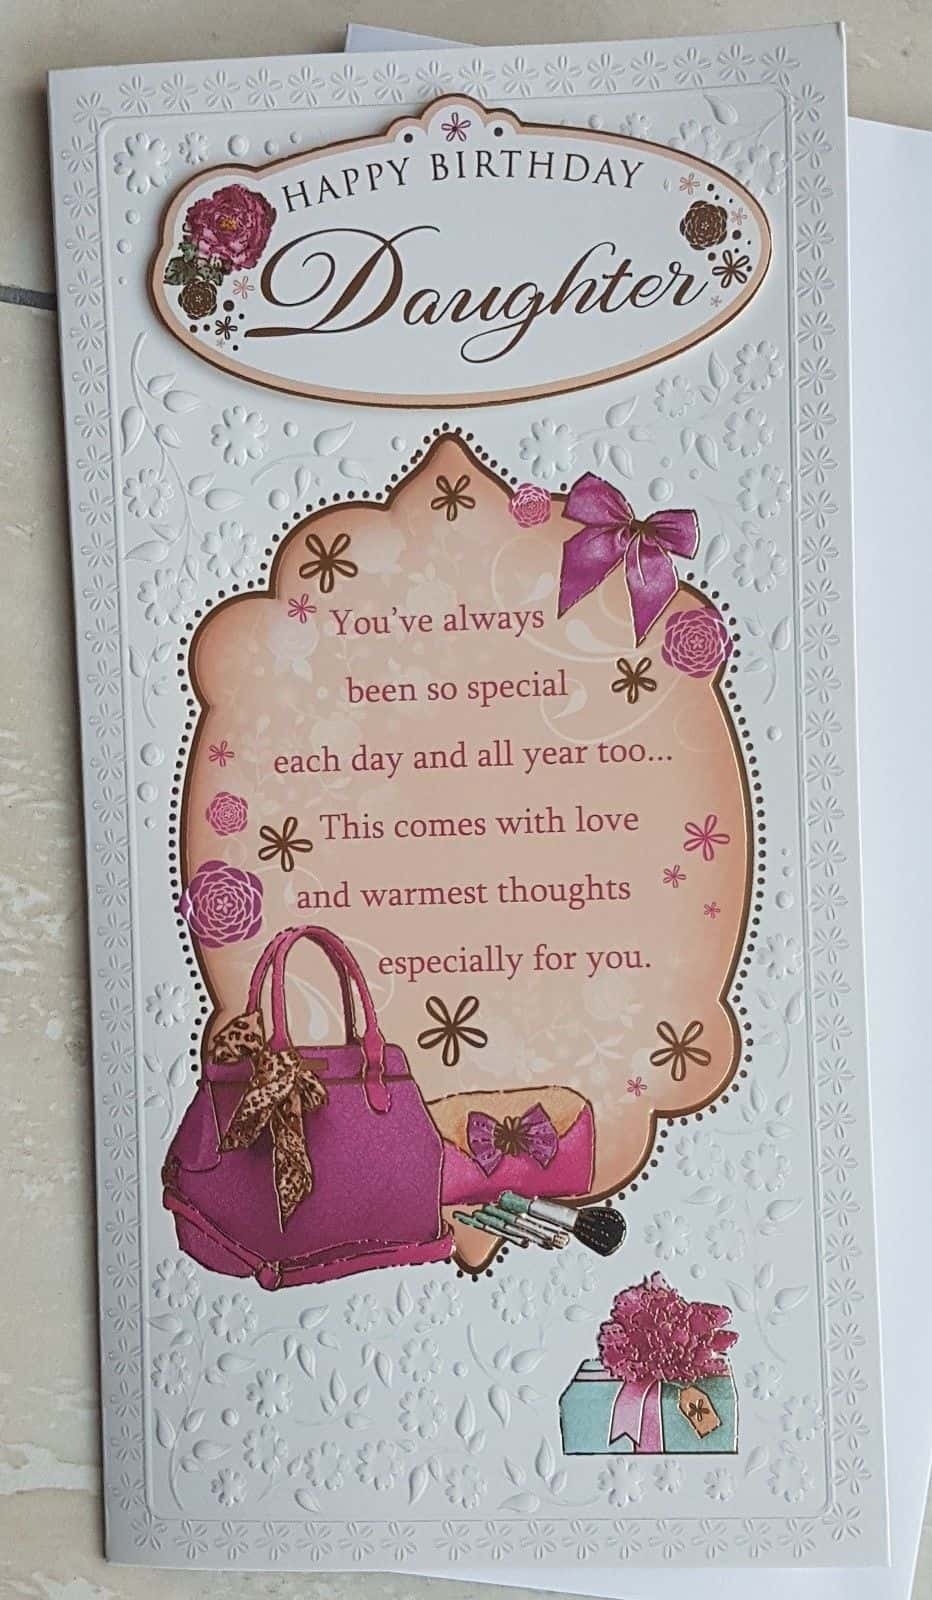 Daughter Birthday Card Beautifully Embossed With Sentiment Verse